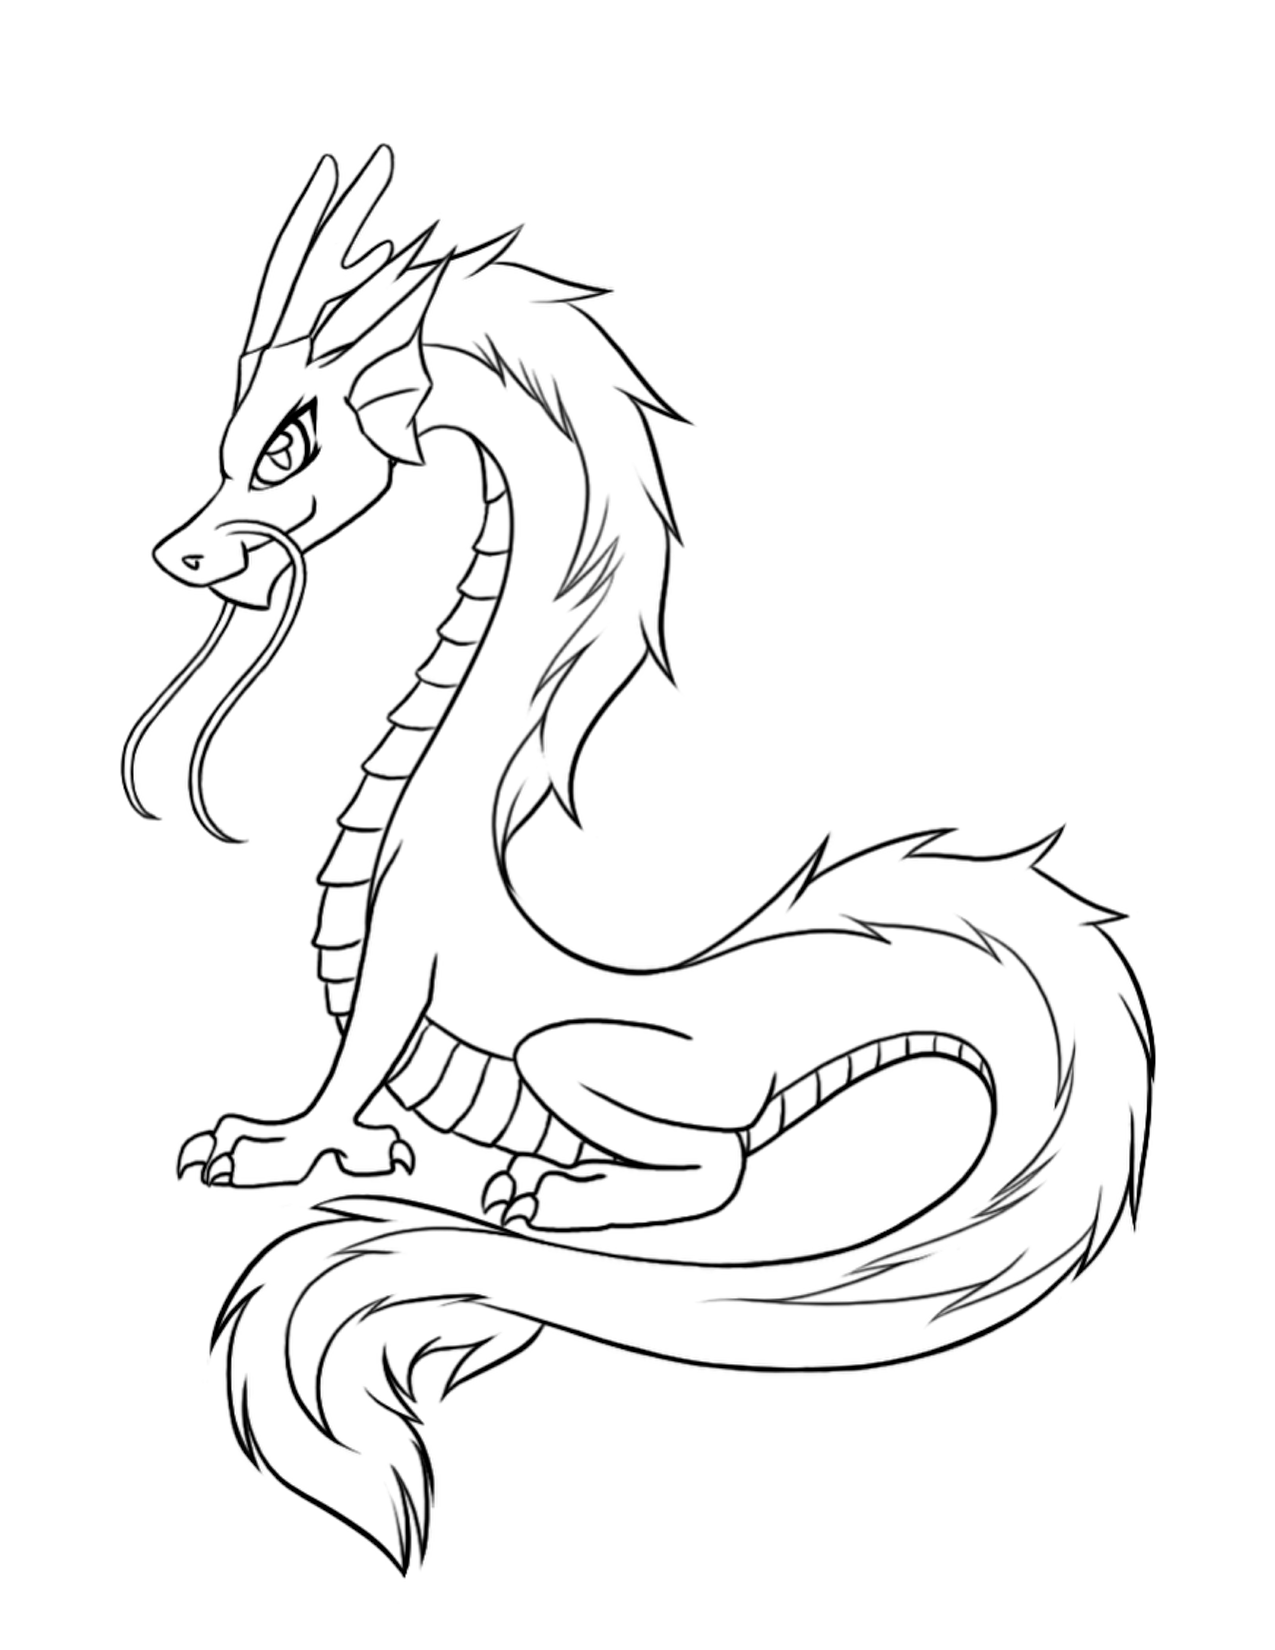 Cool Dragon Coloring Pages Ideas Free Coloring Sheets Dragon Coloring Page Easy Dragon Drawings Dragon Drawing